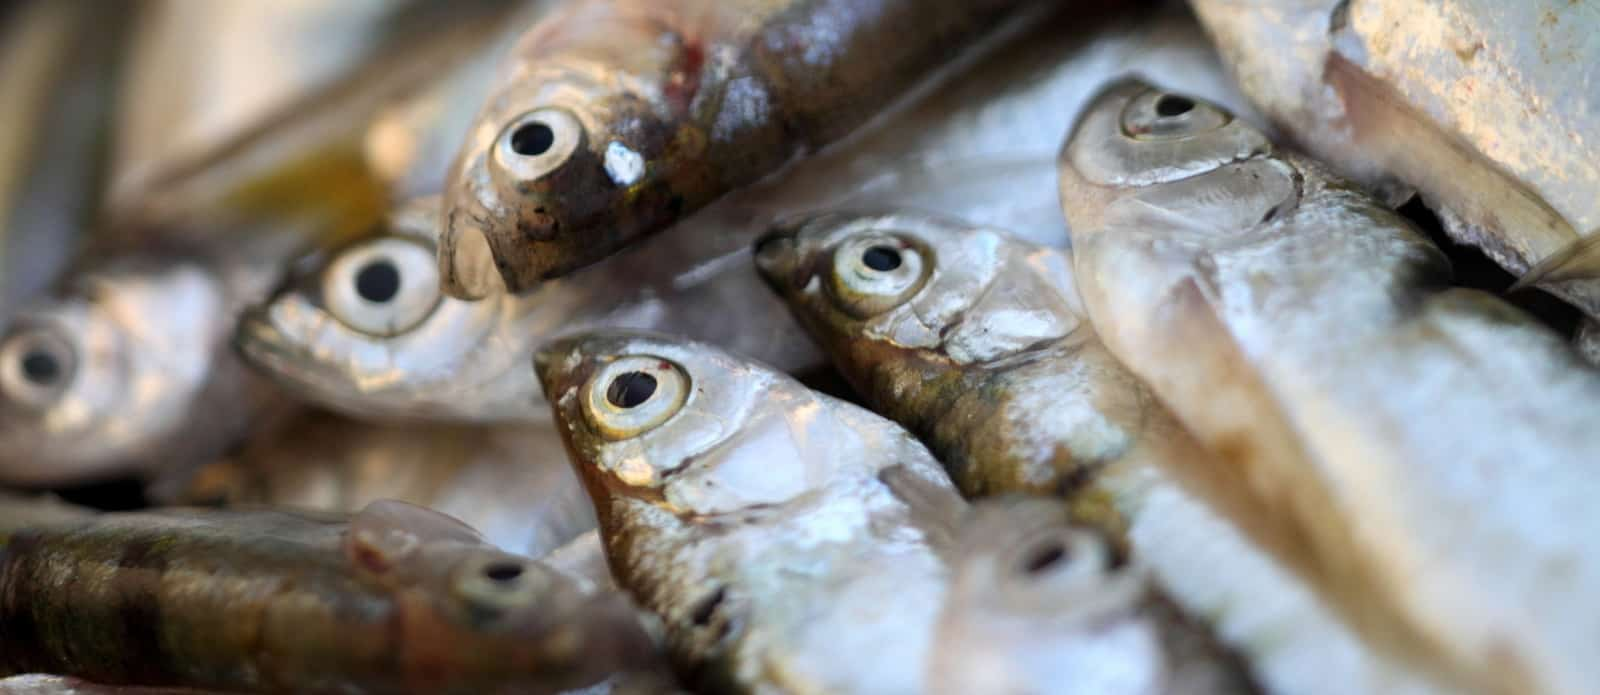 Fish Consumption Associated With Brain Shrinkage